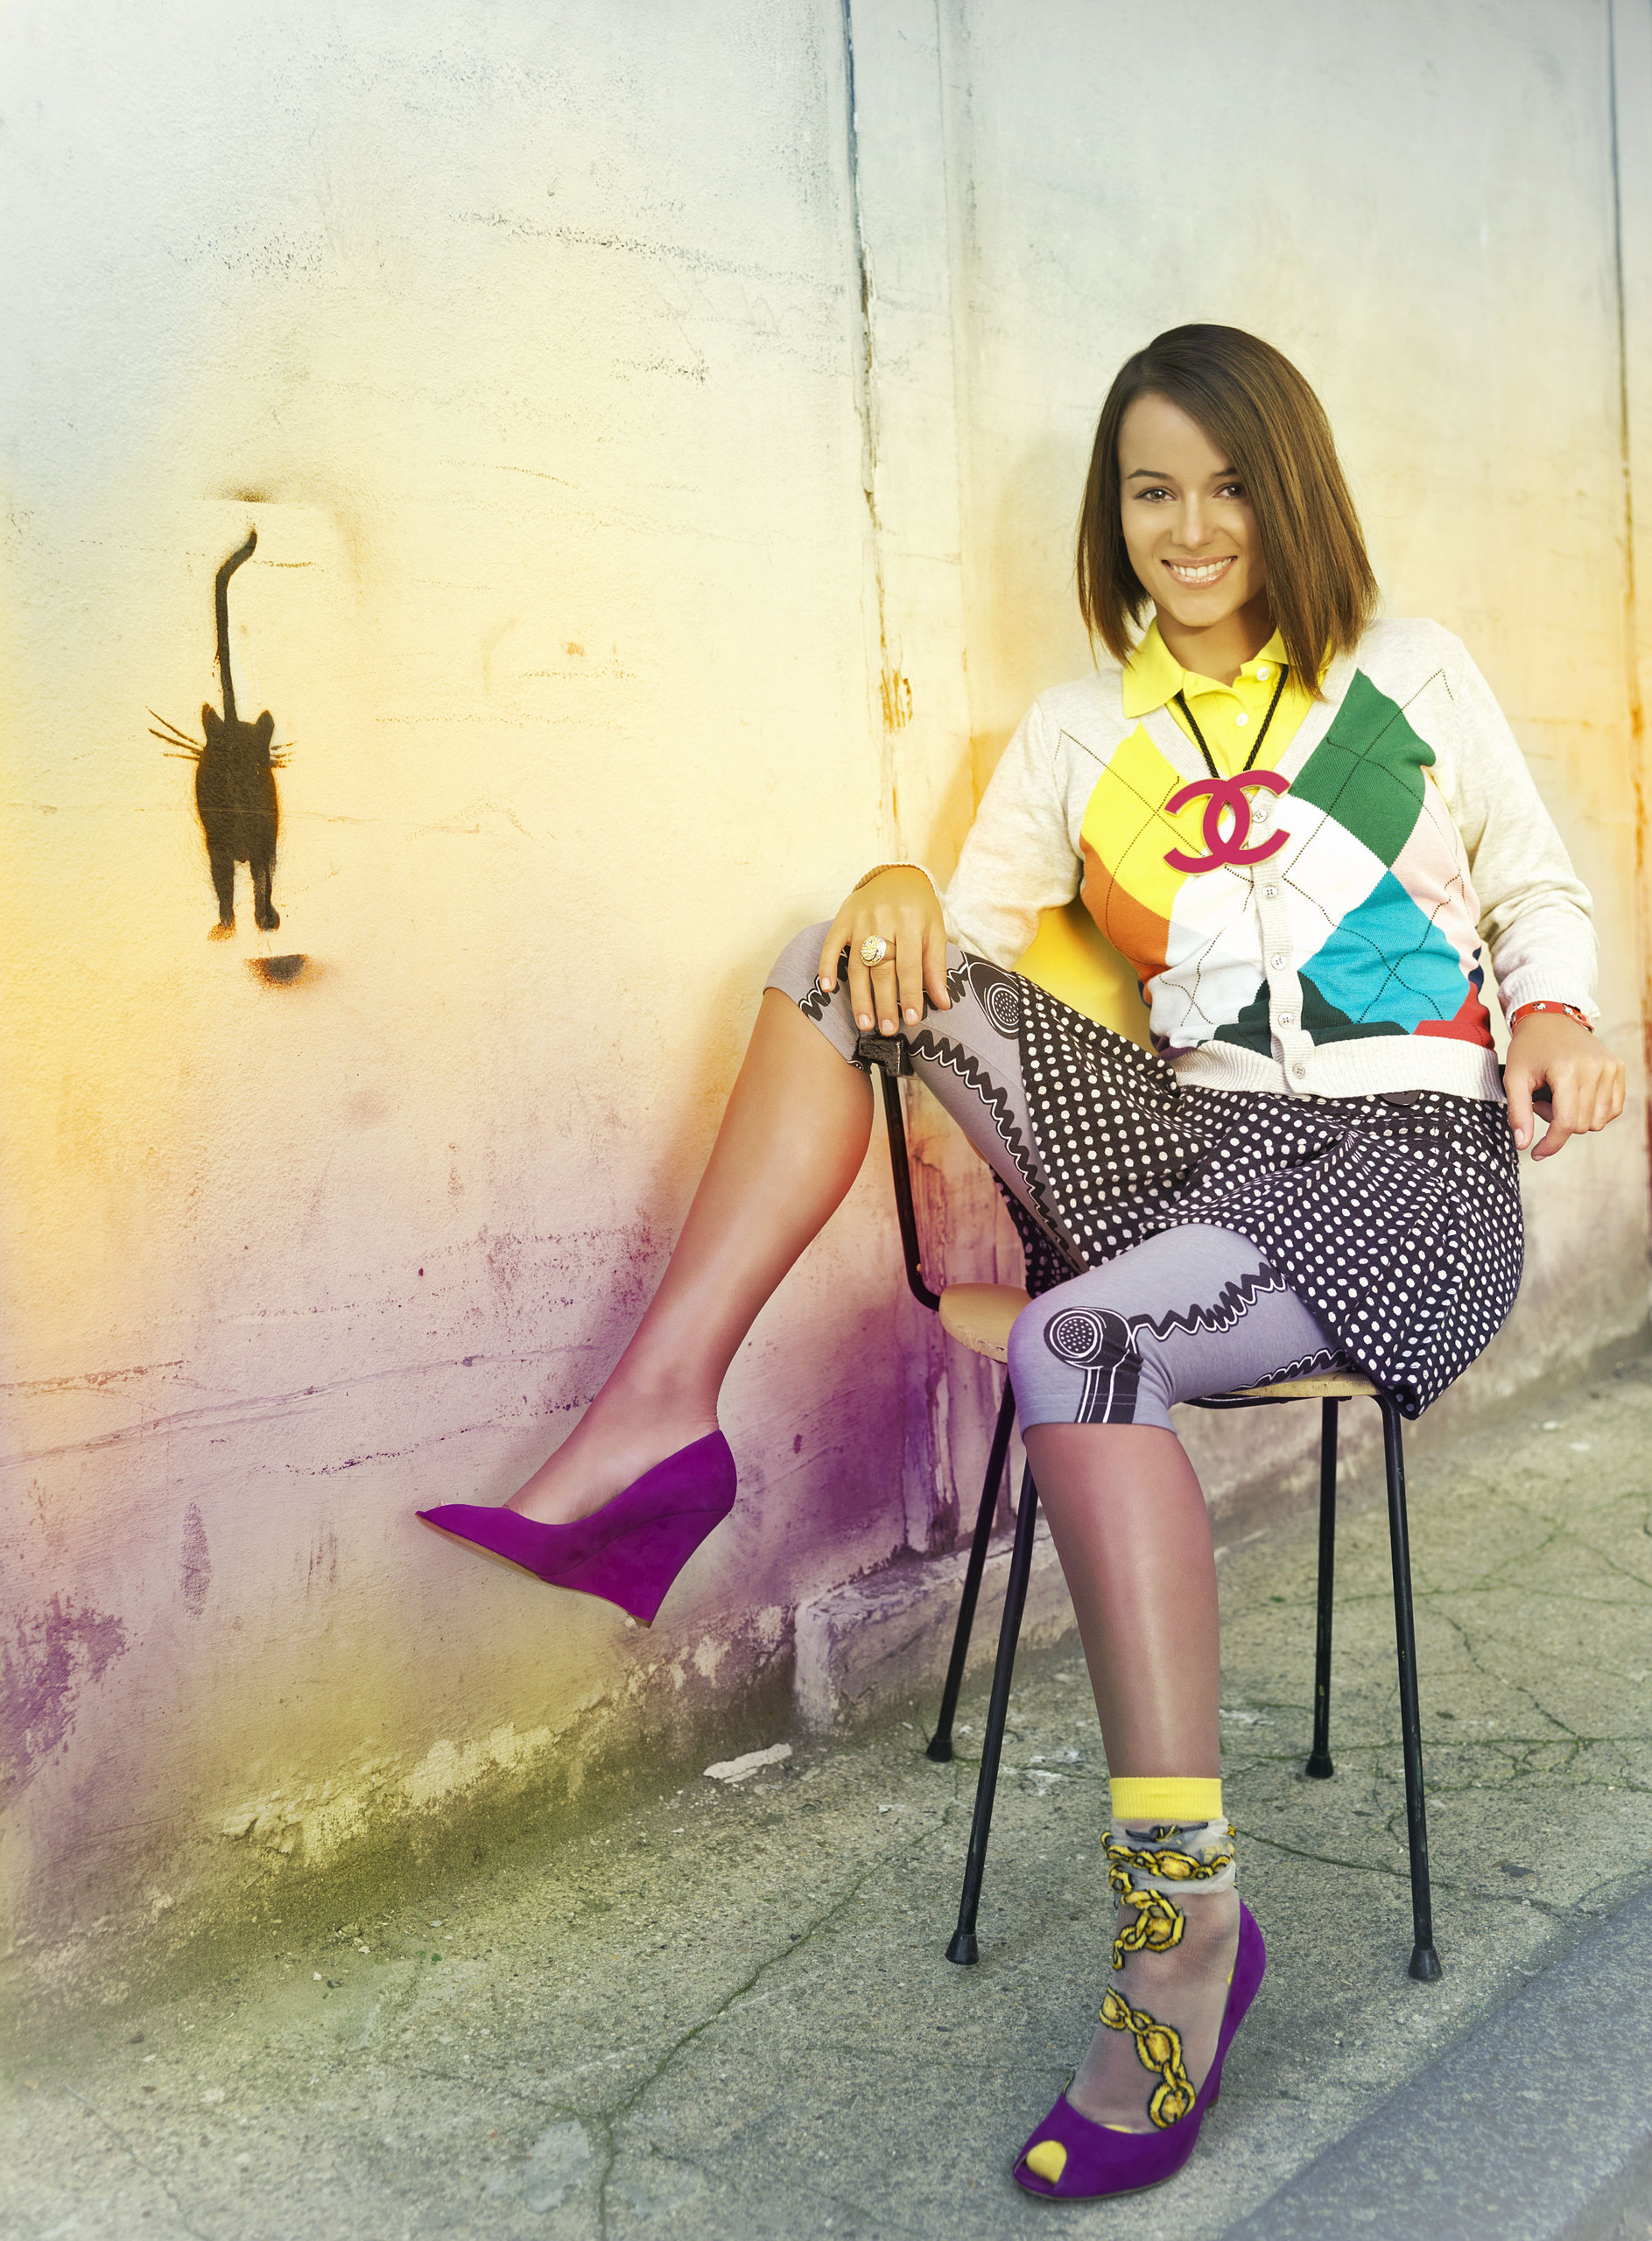 Alizee images Alizee is a child of the century!! HD ...